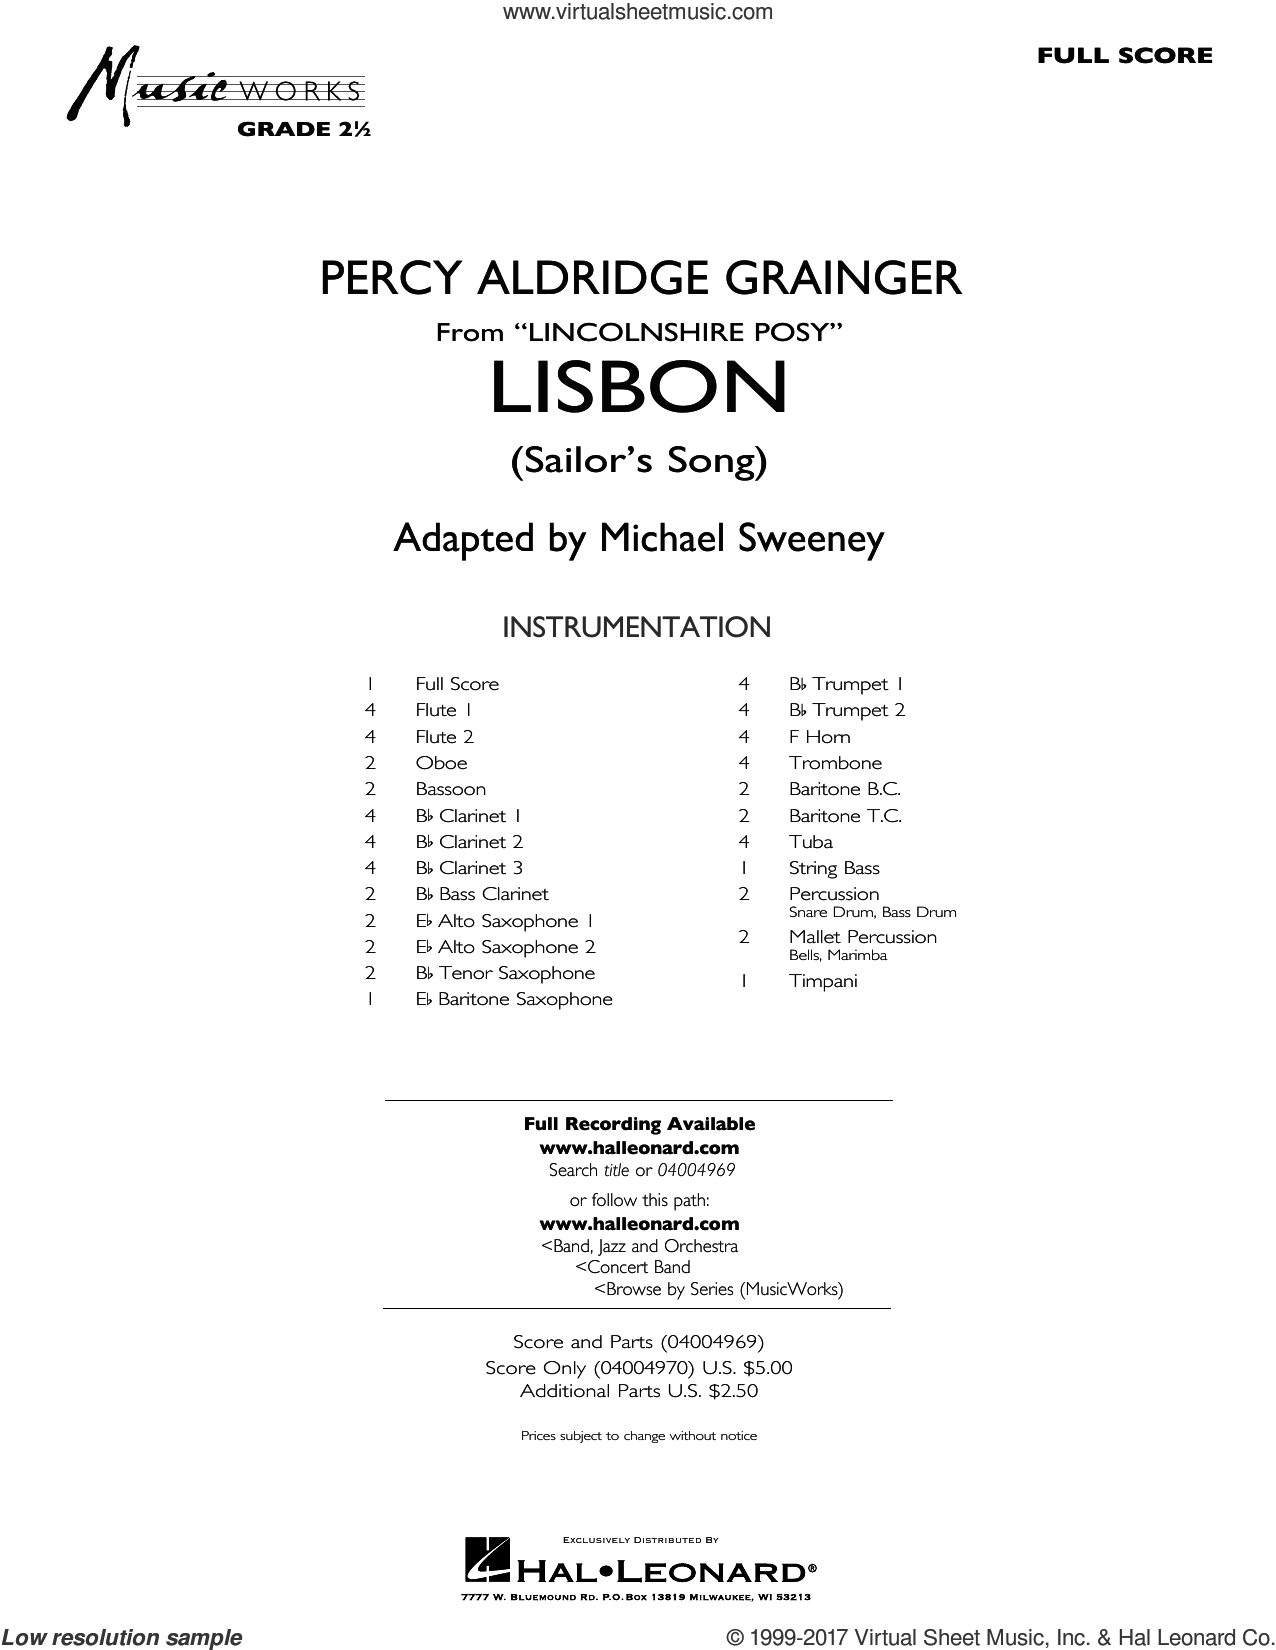 Lisbon (from Lincolnshire Posy) (COMPLETE) sheet music for concert band by Michael Sweeney and Percy Aldridge Grainger, intermediate skill level